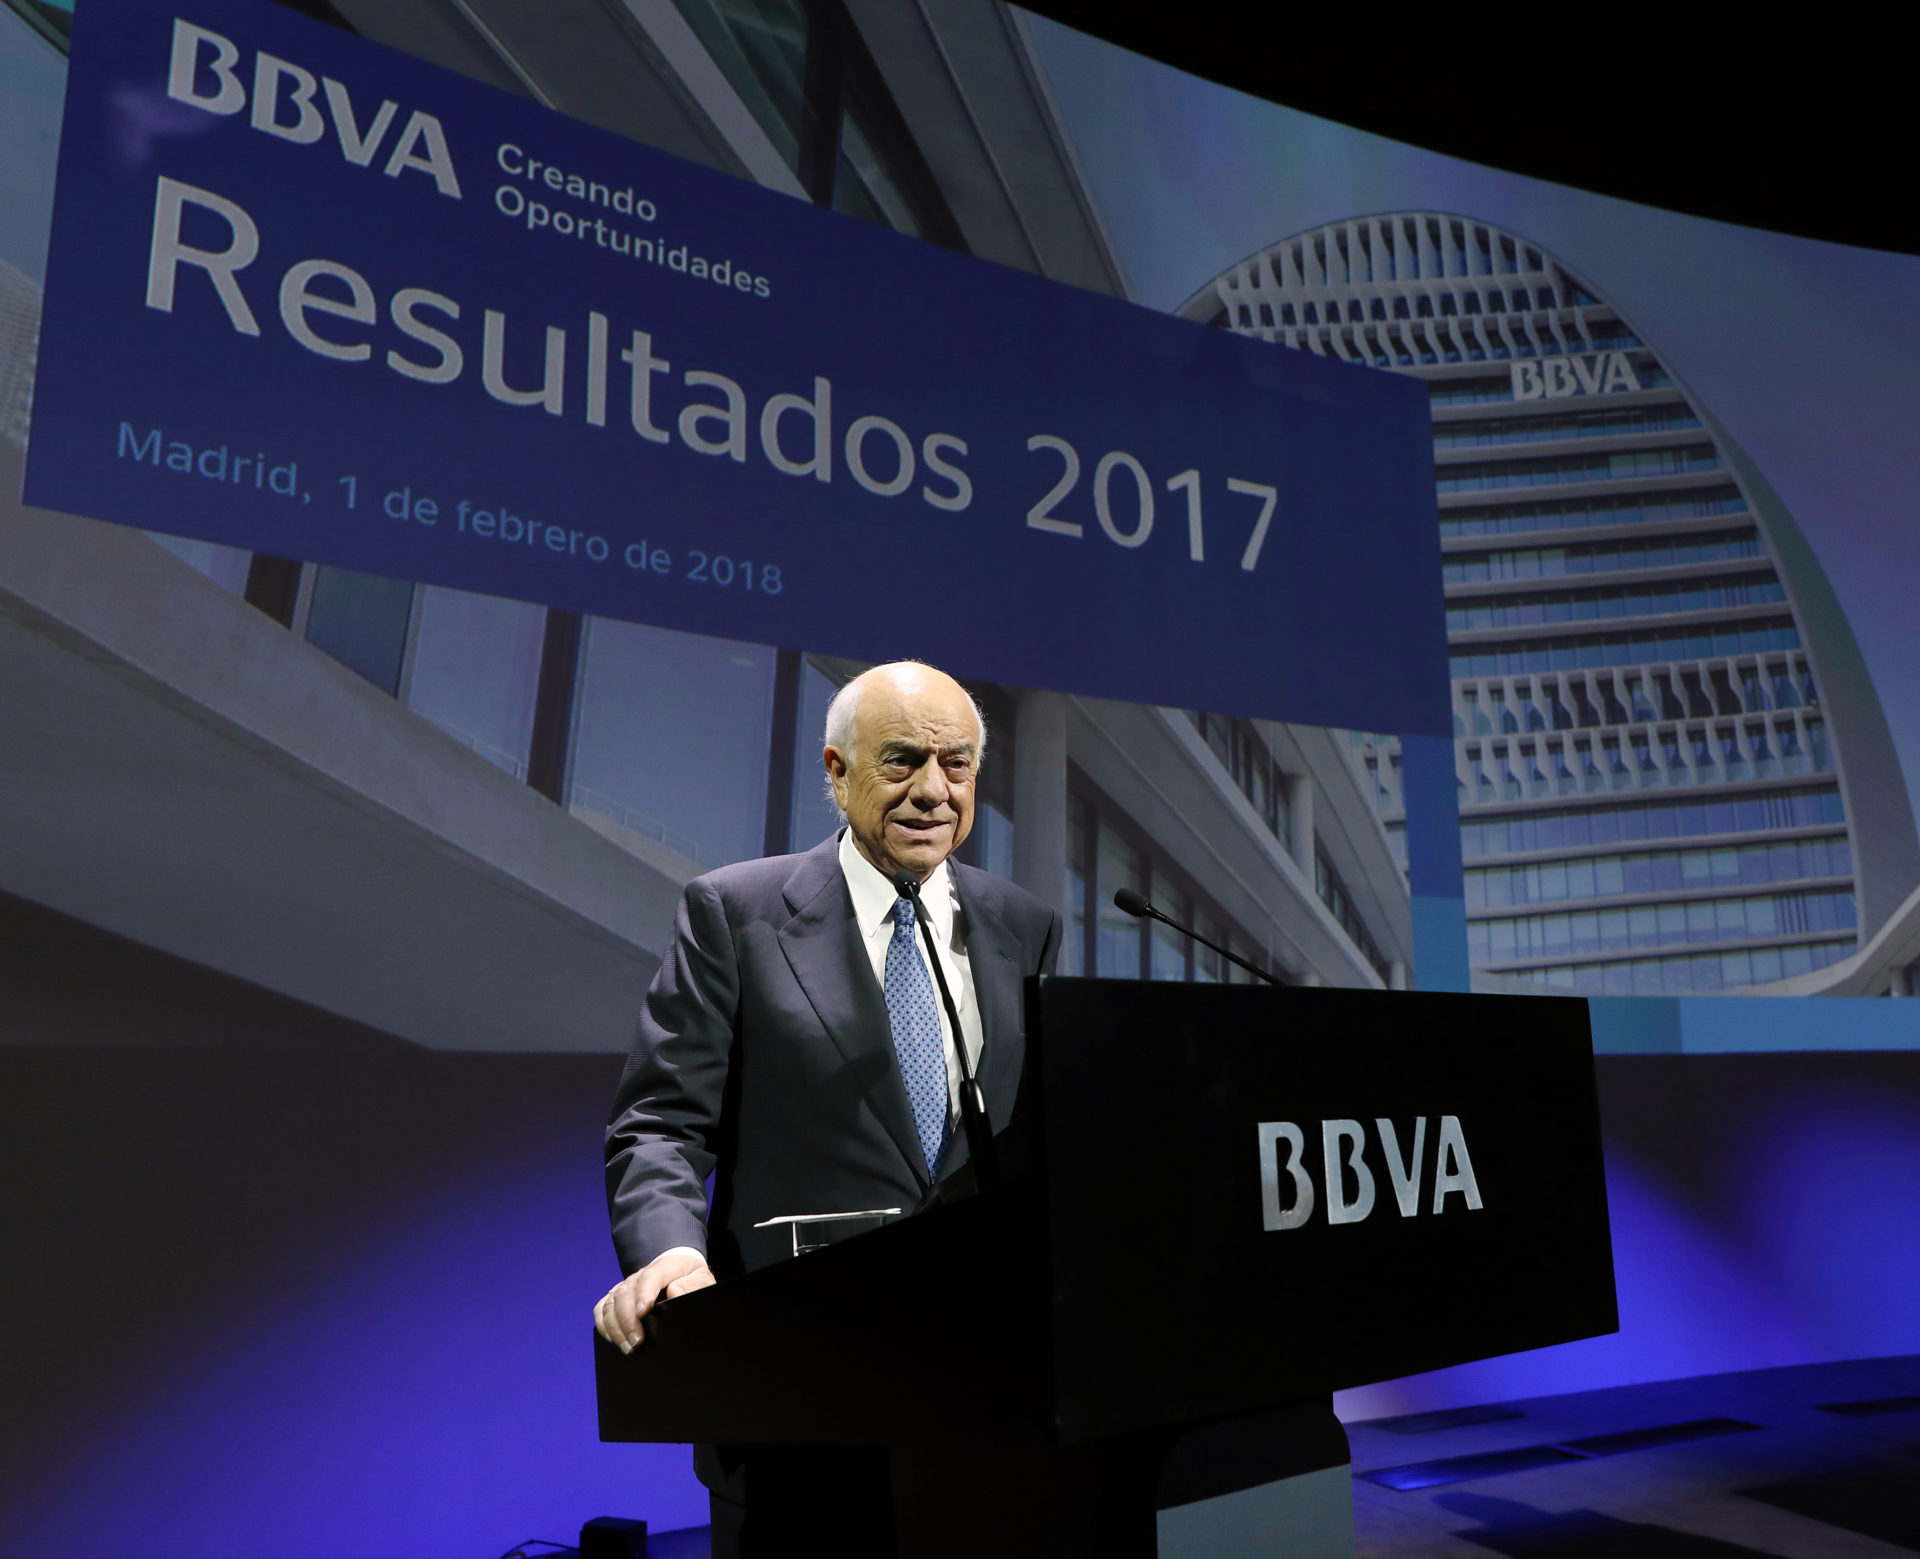 francisco-gonzalez-chairman-bbva-results